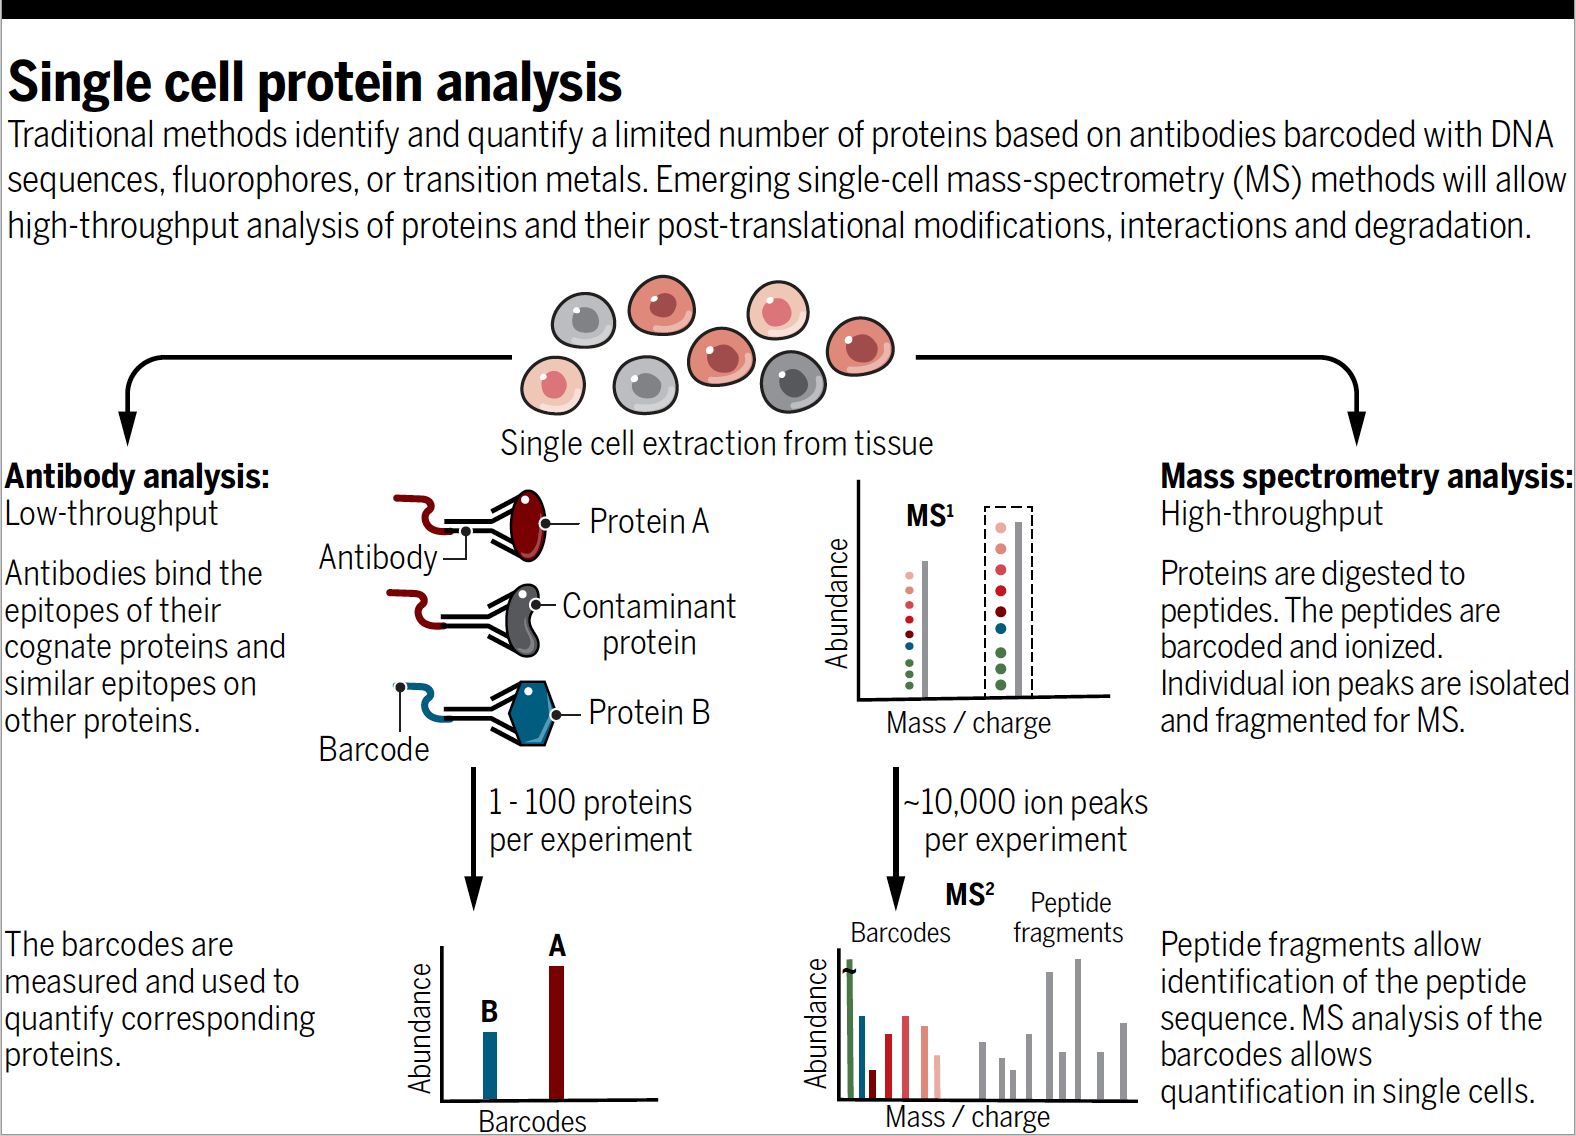 slide of single cell protein analysis